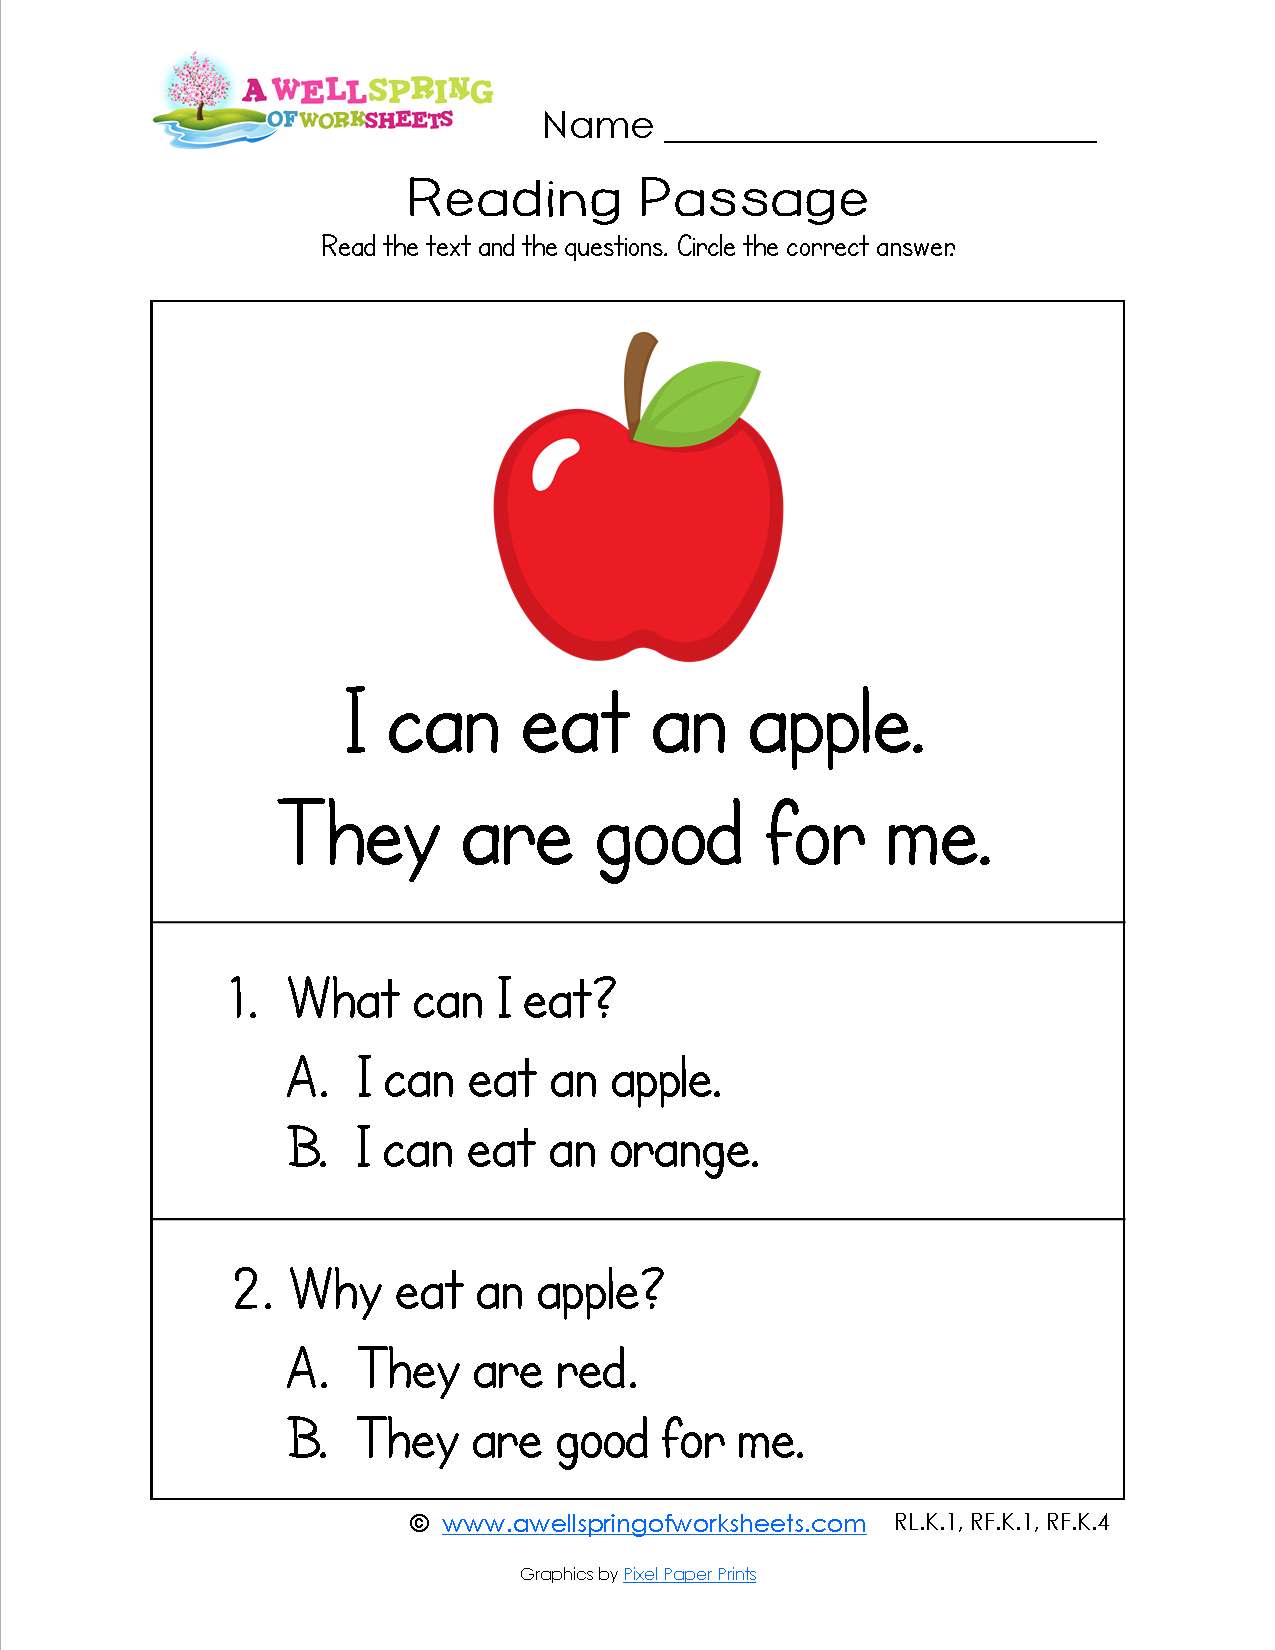 Worksheet Reading Test For Kindergarten first grade reading comprehension worksheet phonics words kindergarten passages check out these 18 worksheets each has two sight word rich